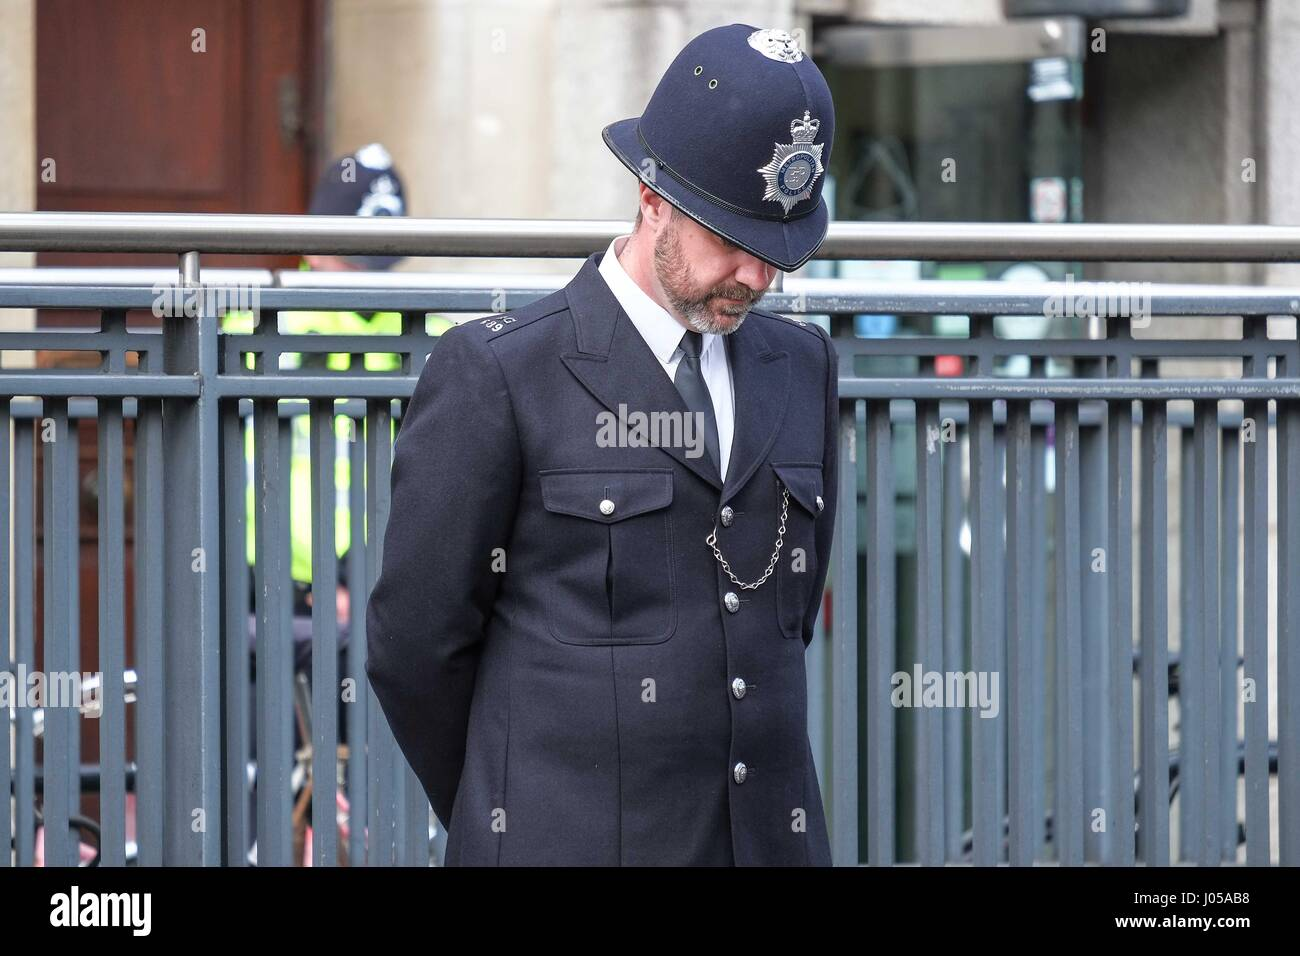 London, UK. 10th Apr, 2017. A Police Officer bows his head as the sevice begins. PC Keith Palmer was stabbed to - Stock Image